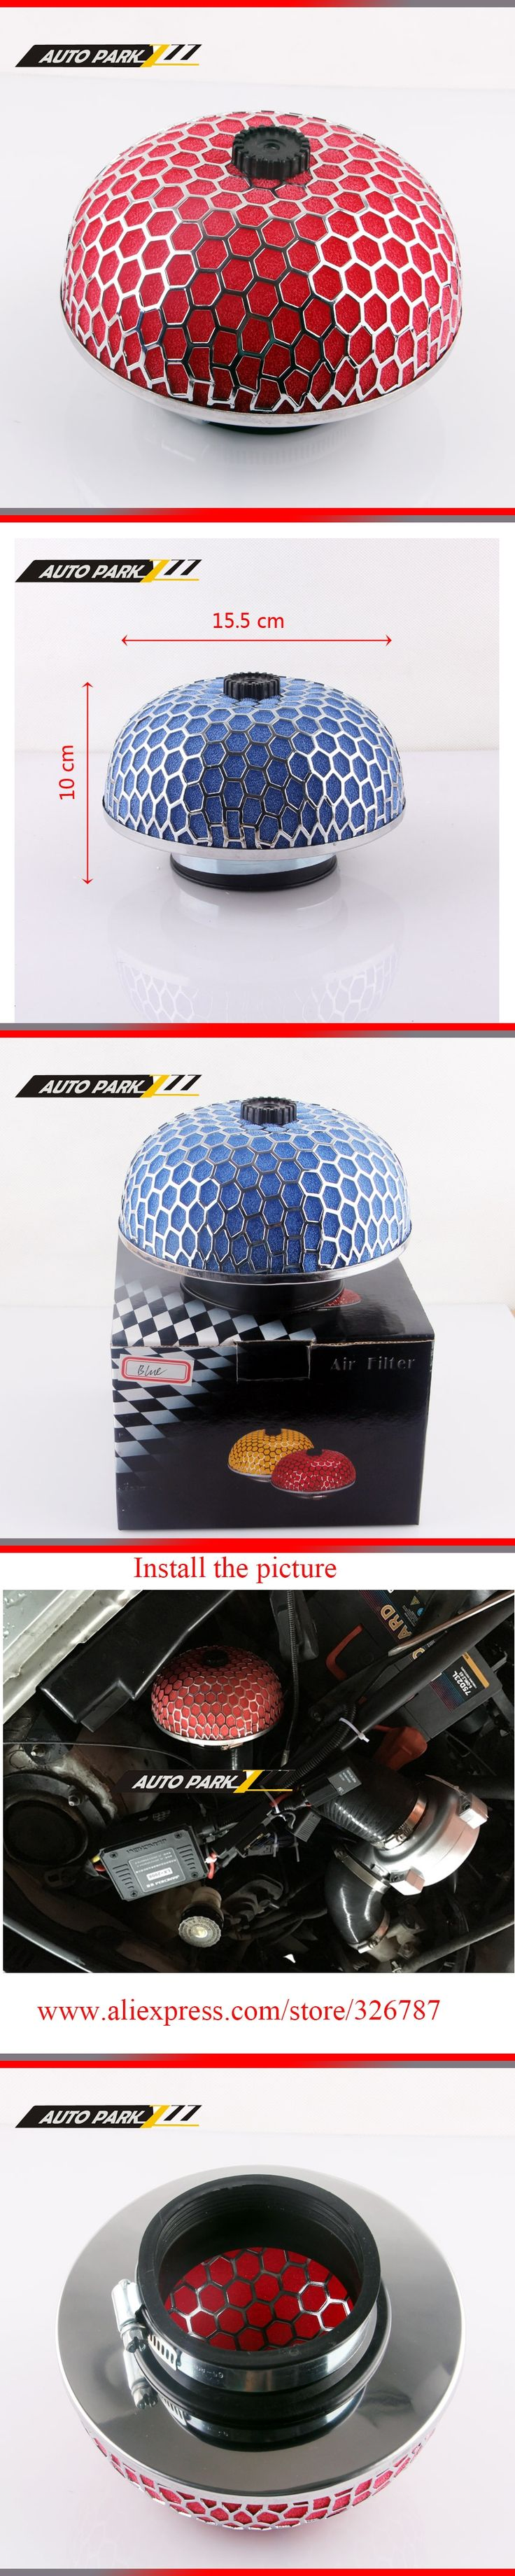 70mm neck universal air filter car,filter air turbo high flow racing cold engine air filter